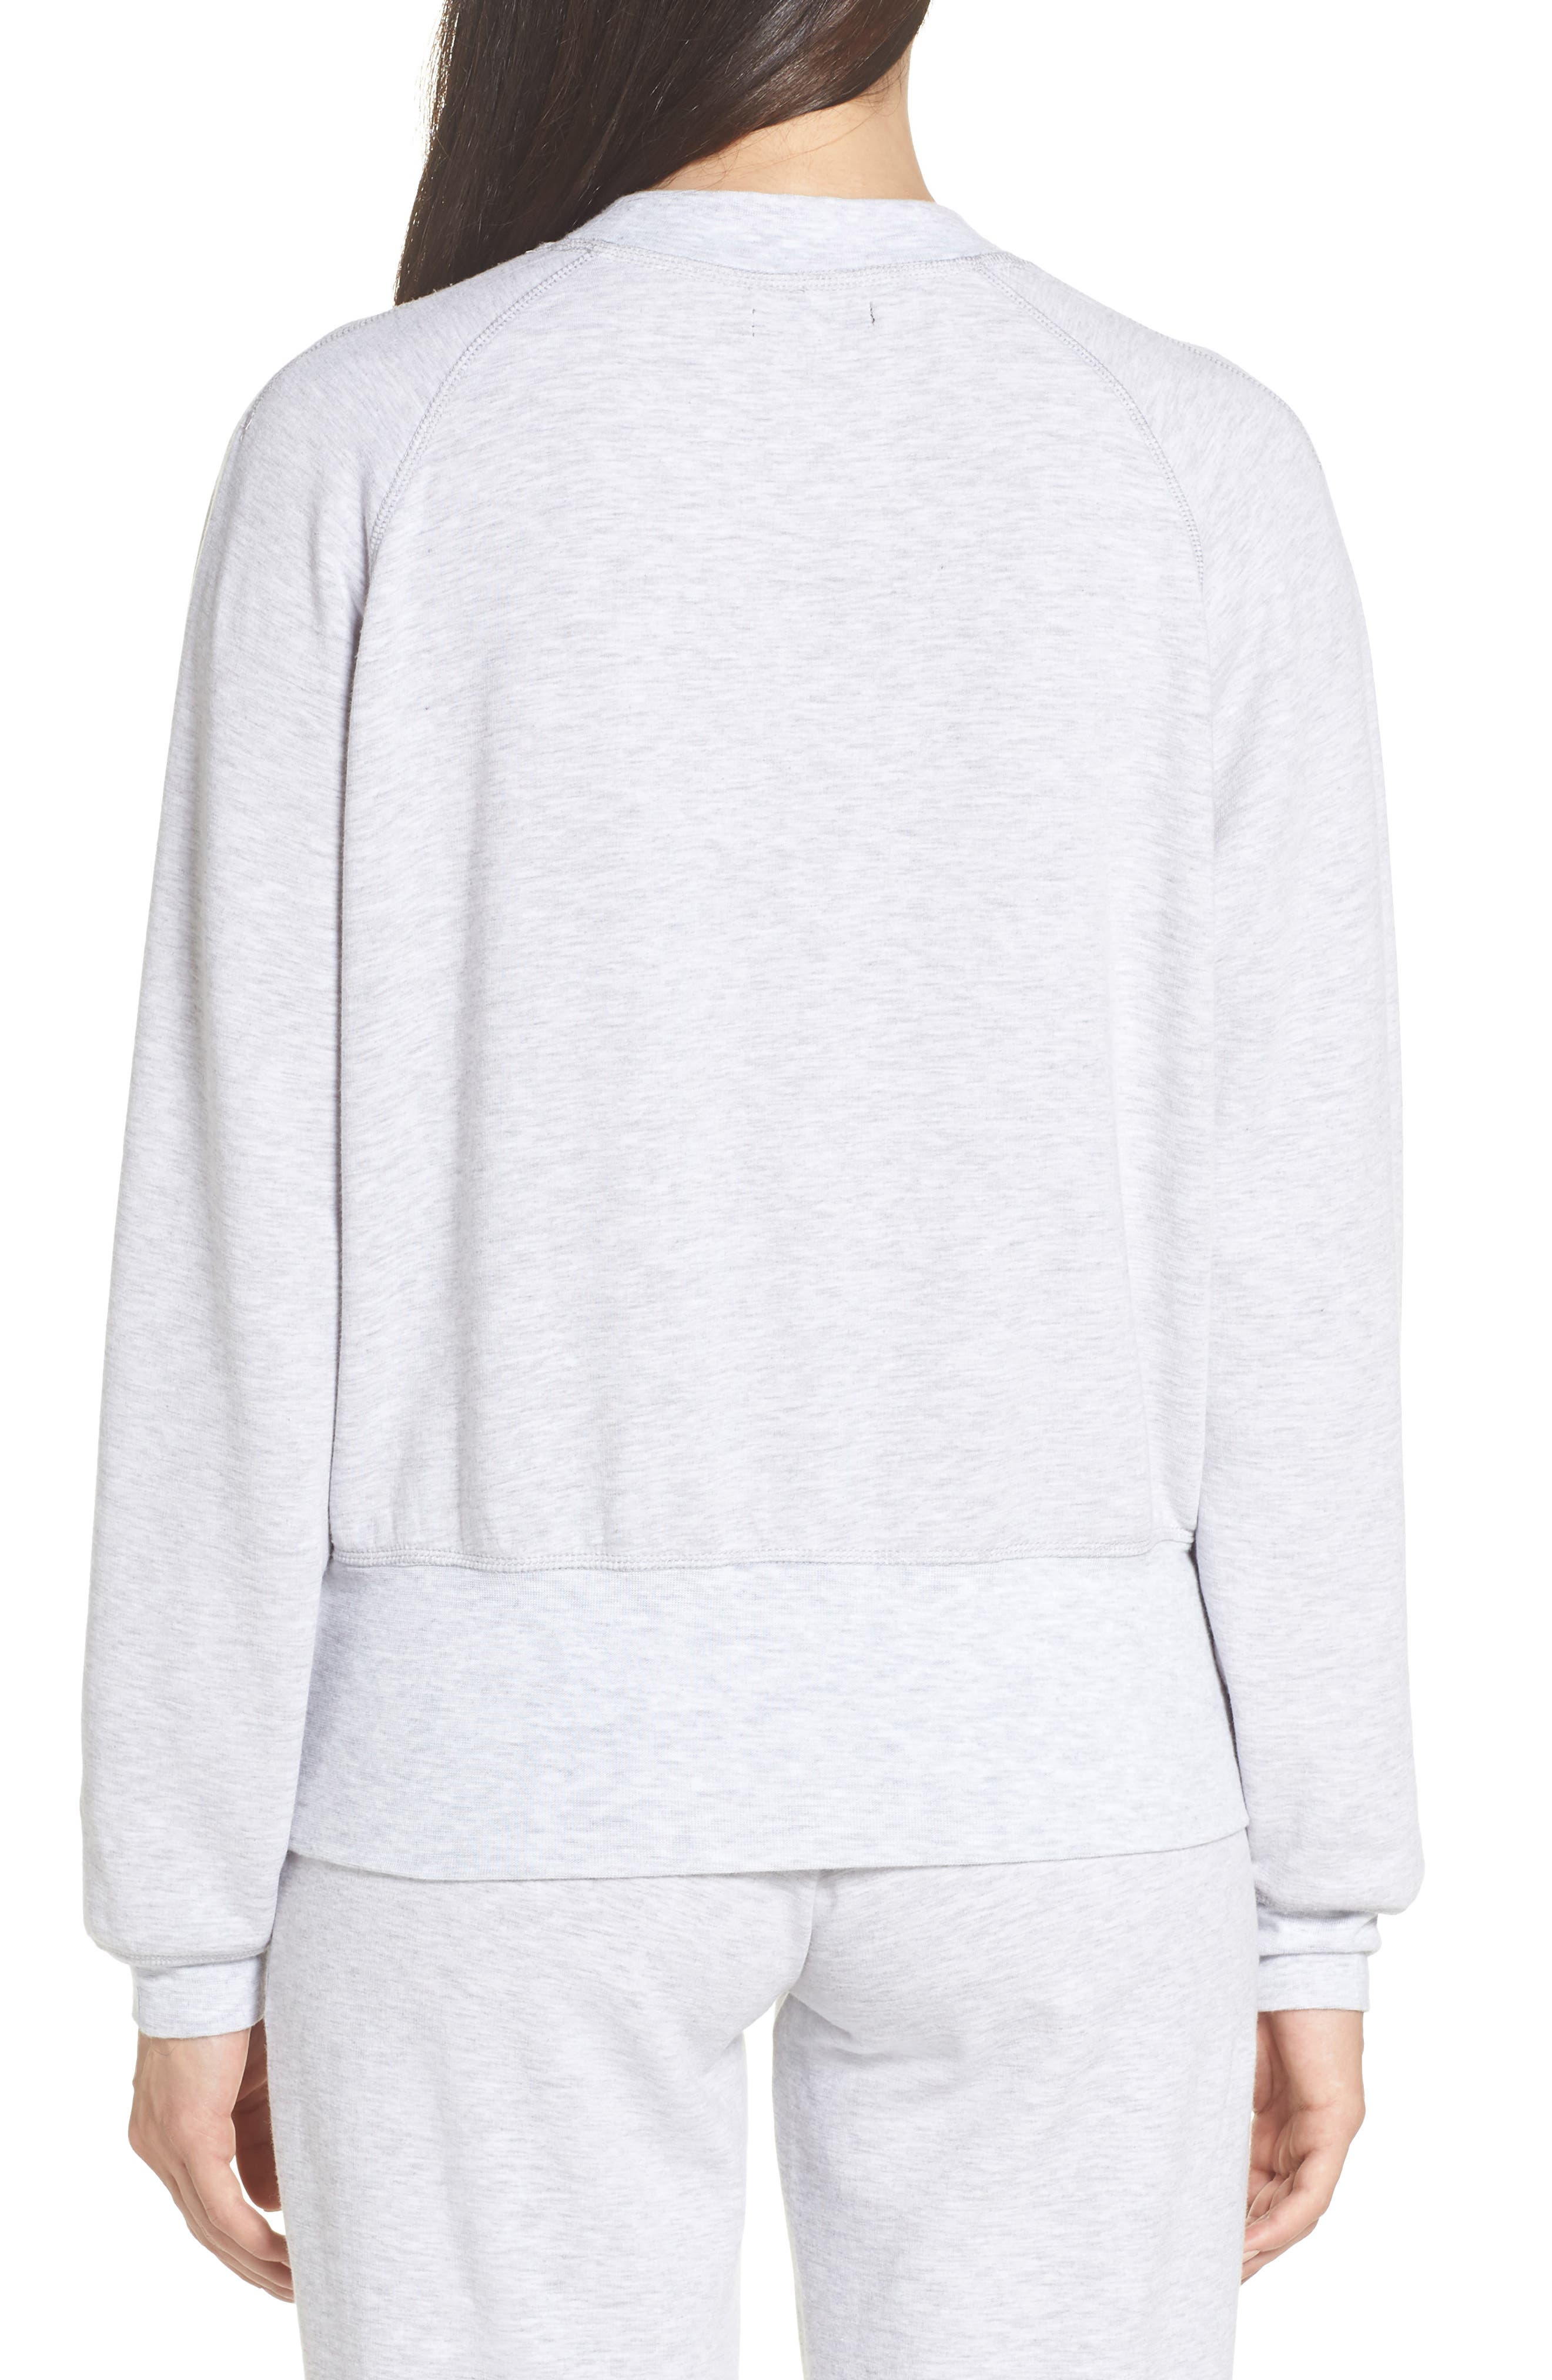 Cool Touch Sweatshirt,                             Alternate thumbnail 2, color,                             GREY